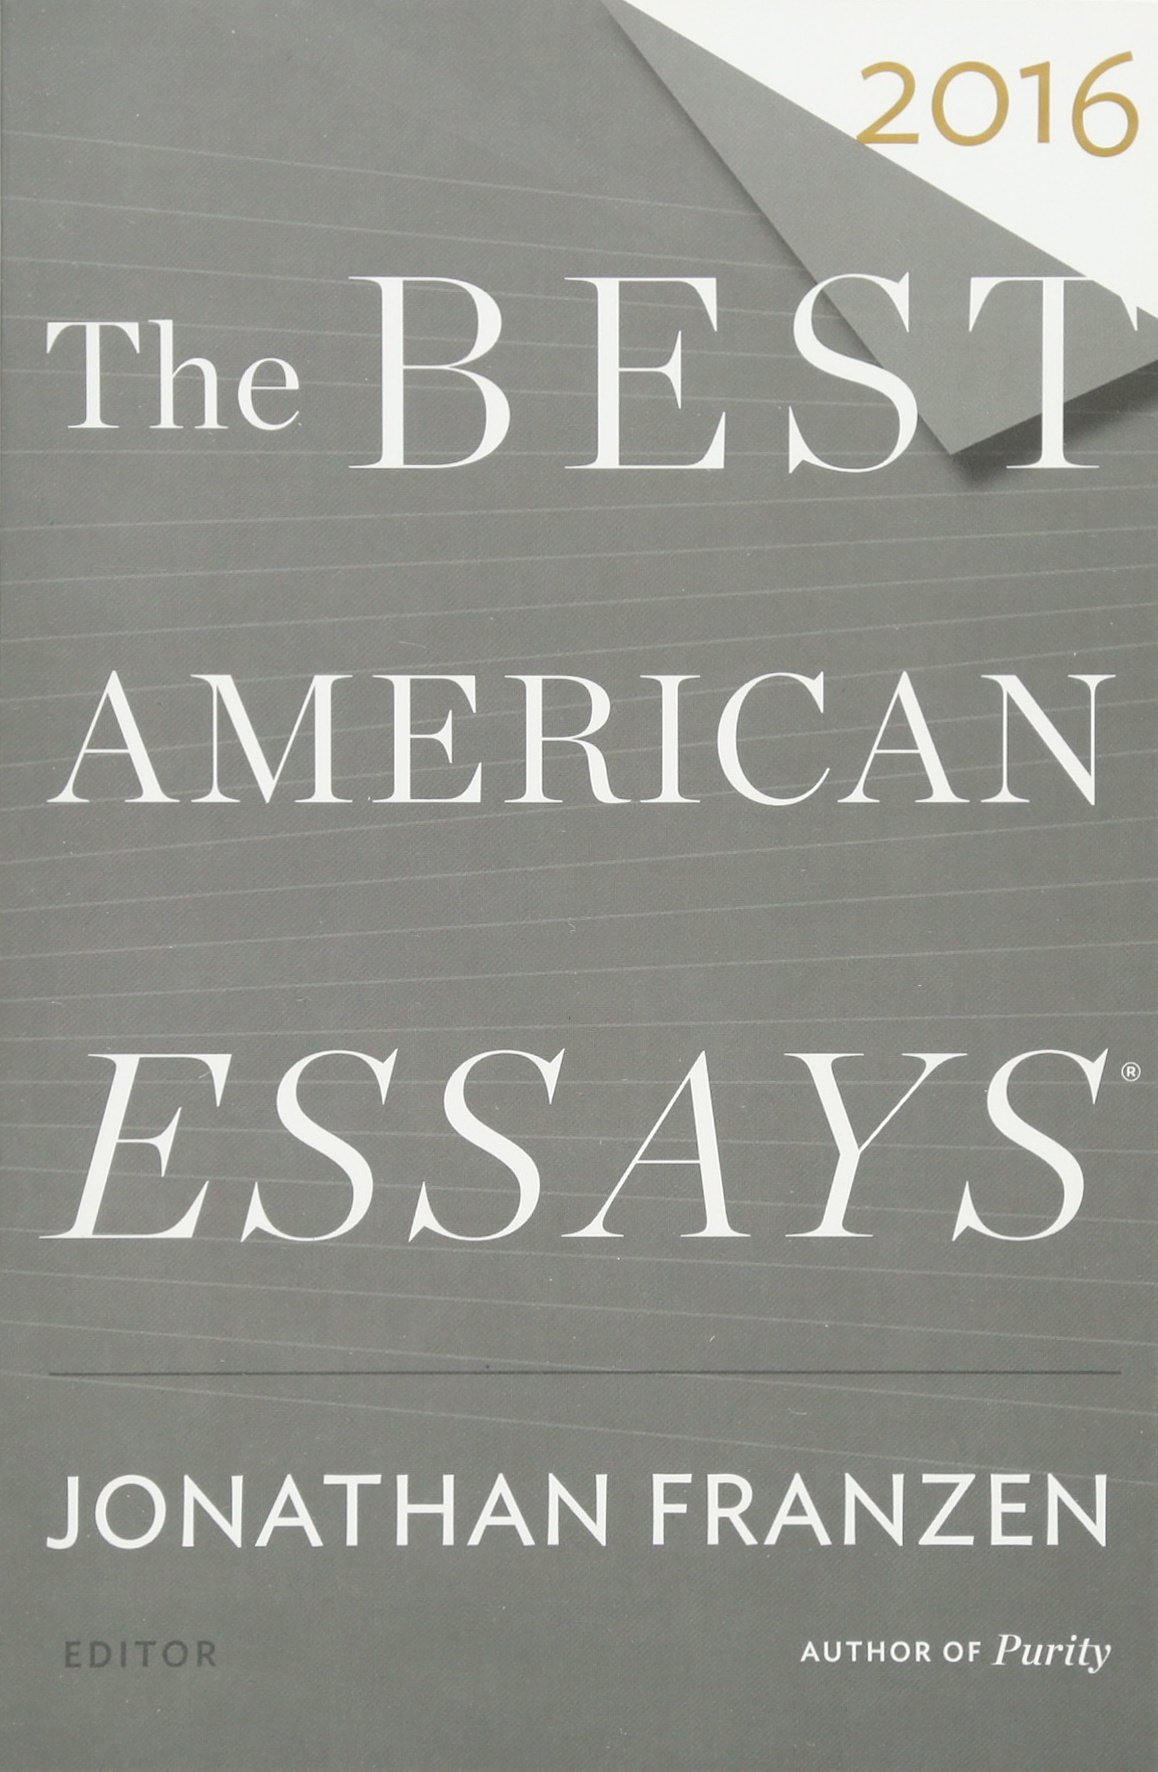 001 71a6bhsgsdl The Best American Essays Essay Phenomenal 2016 Pdf Download Audiobook Sparknotes